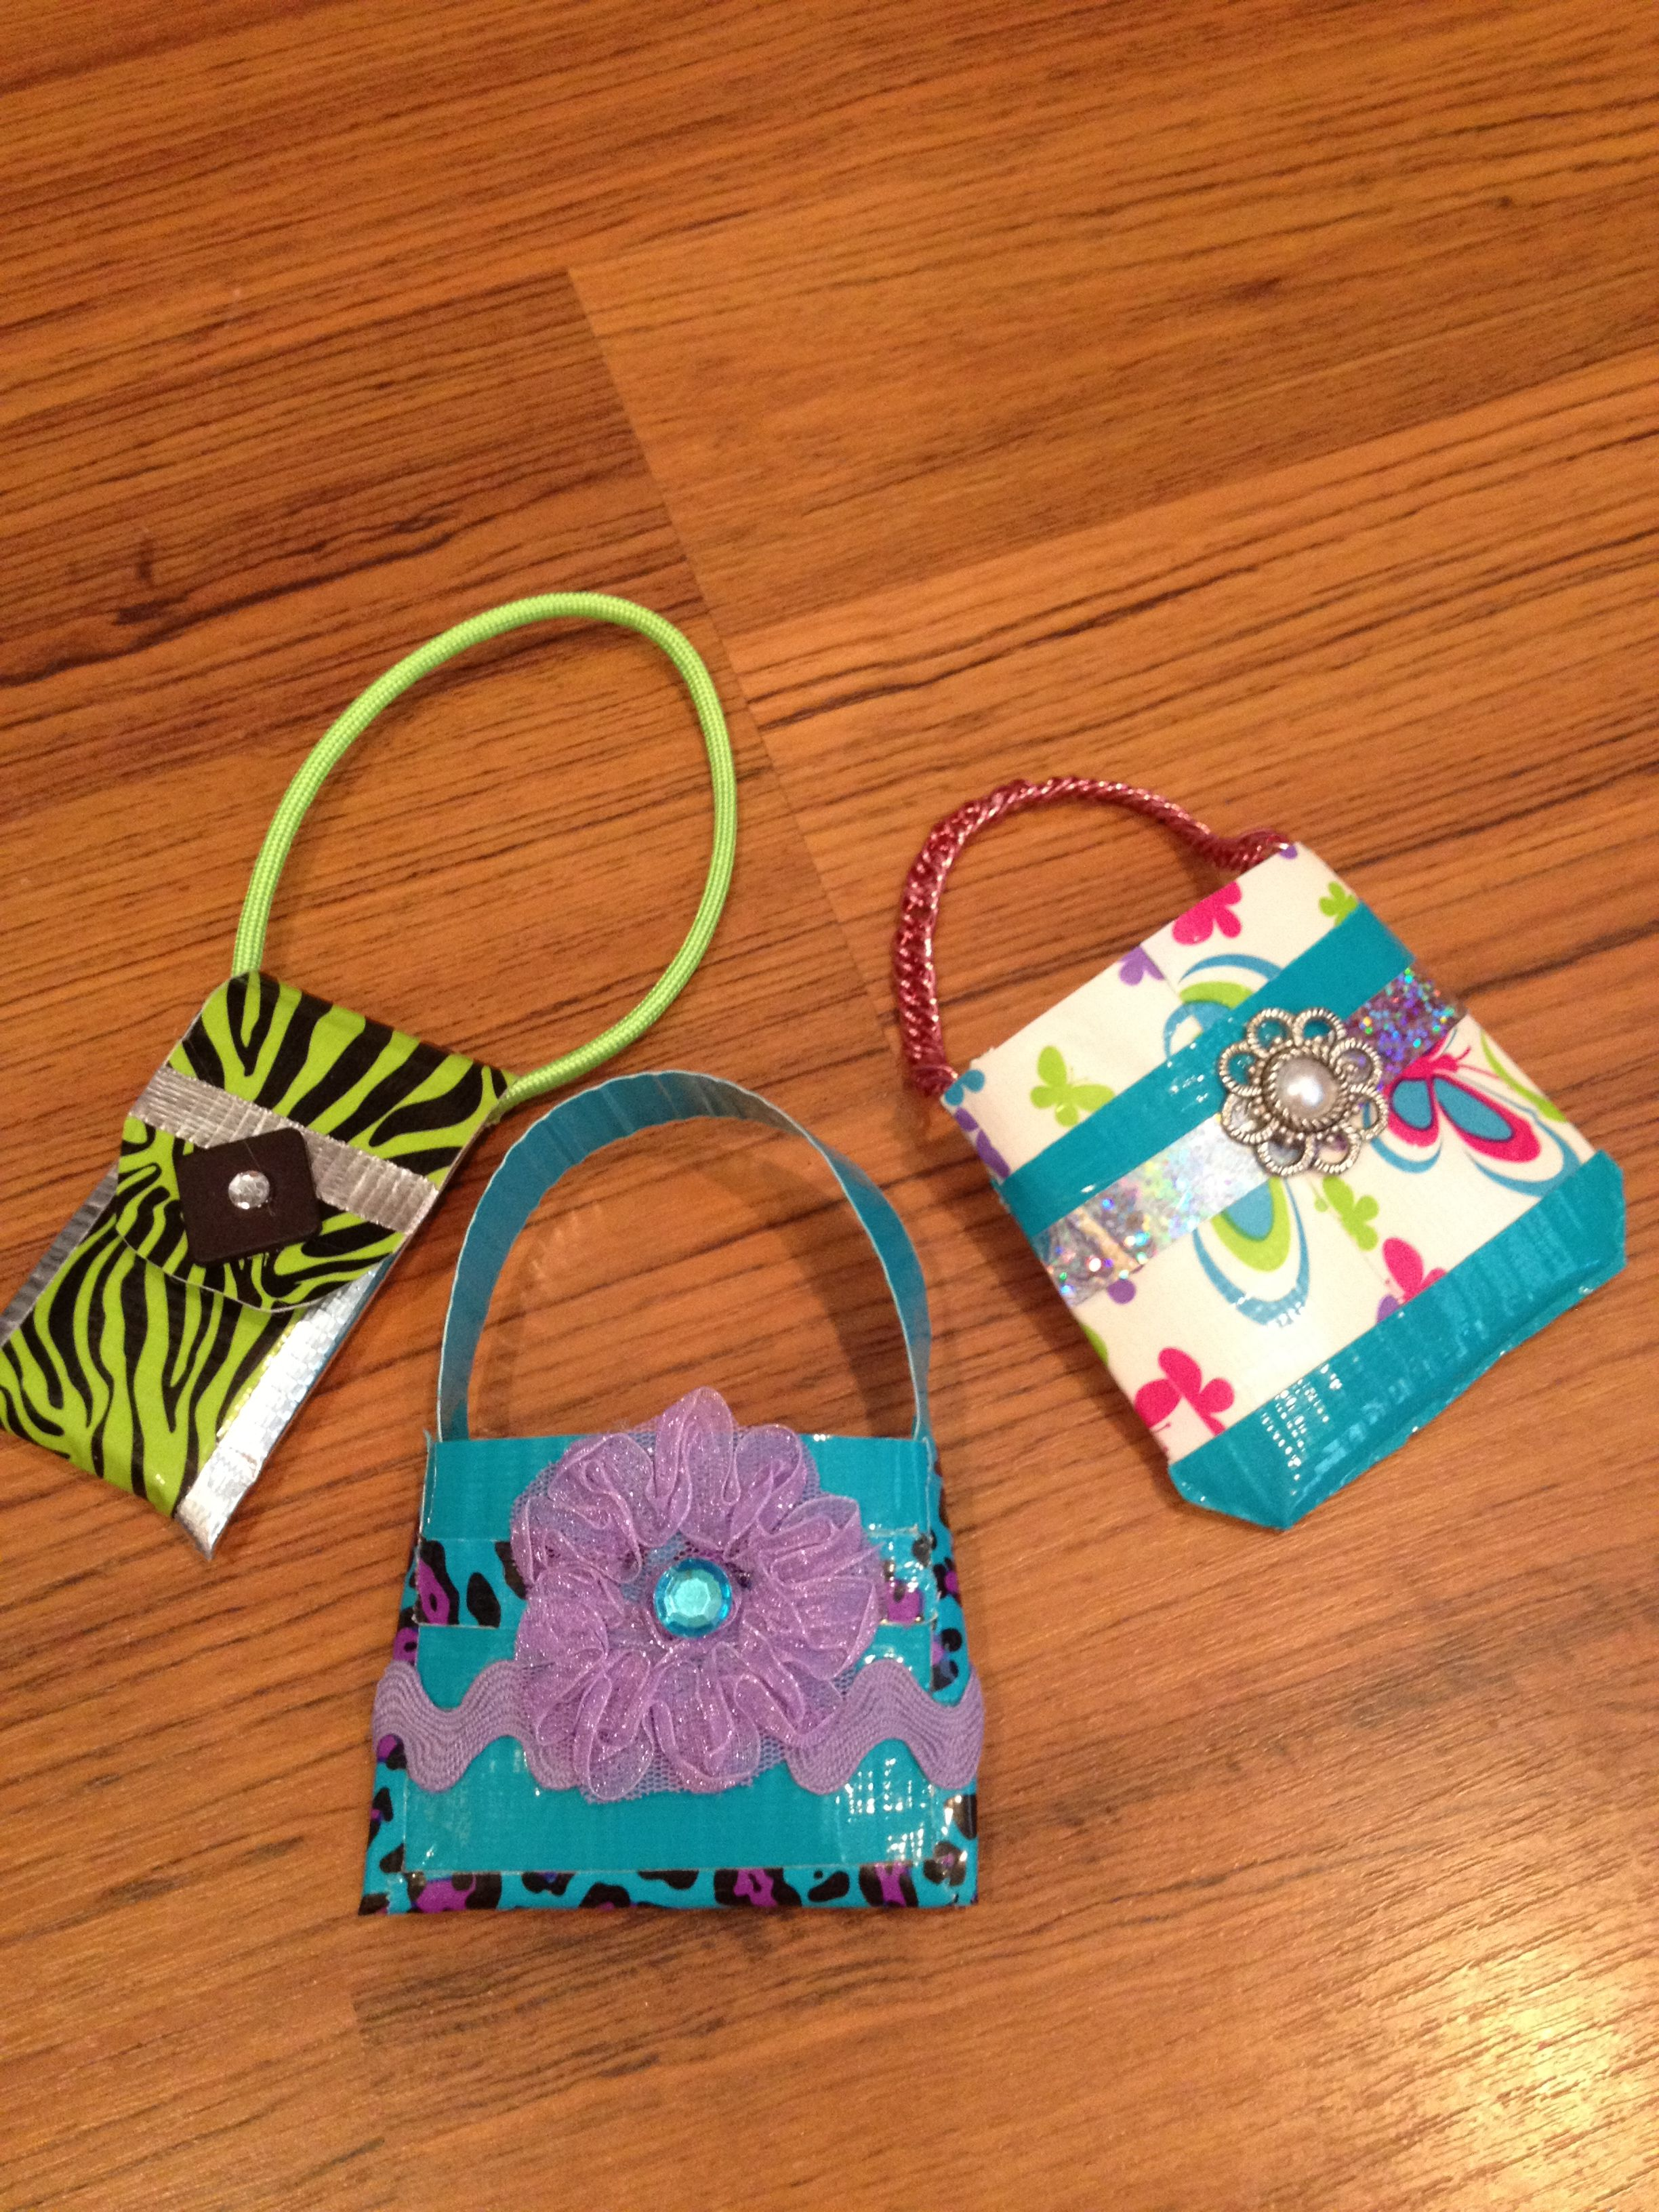 Soooo I made these little duct tape purses for your dolls...so fun and EASY!!!